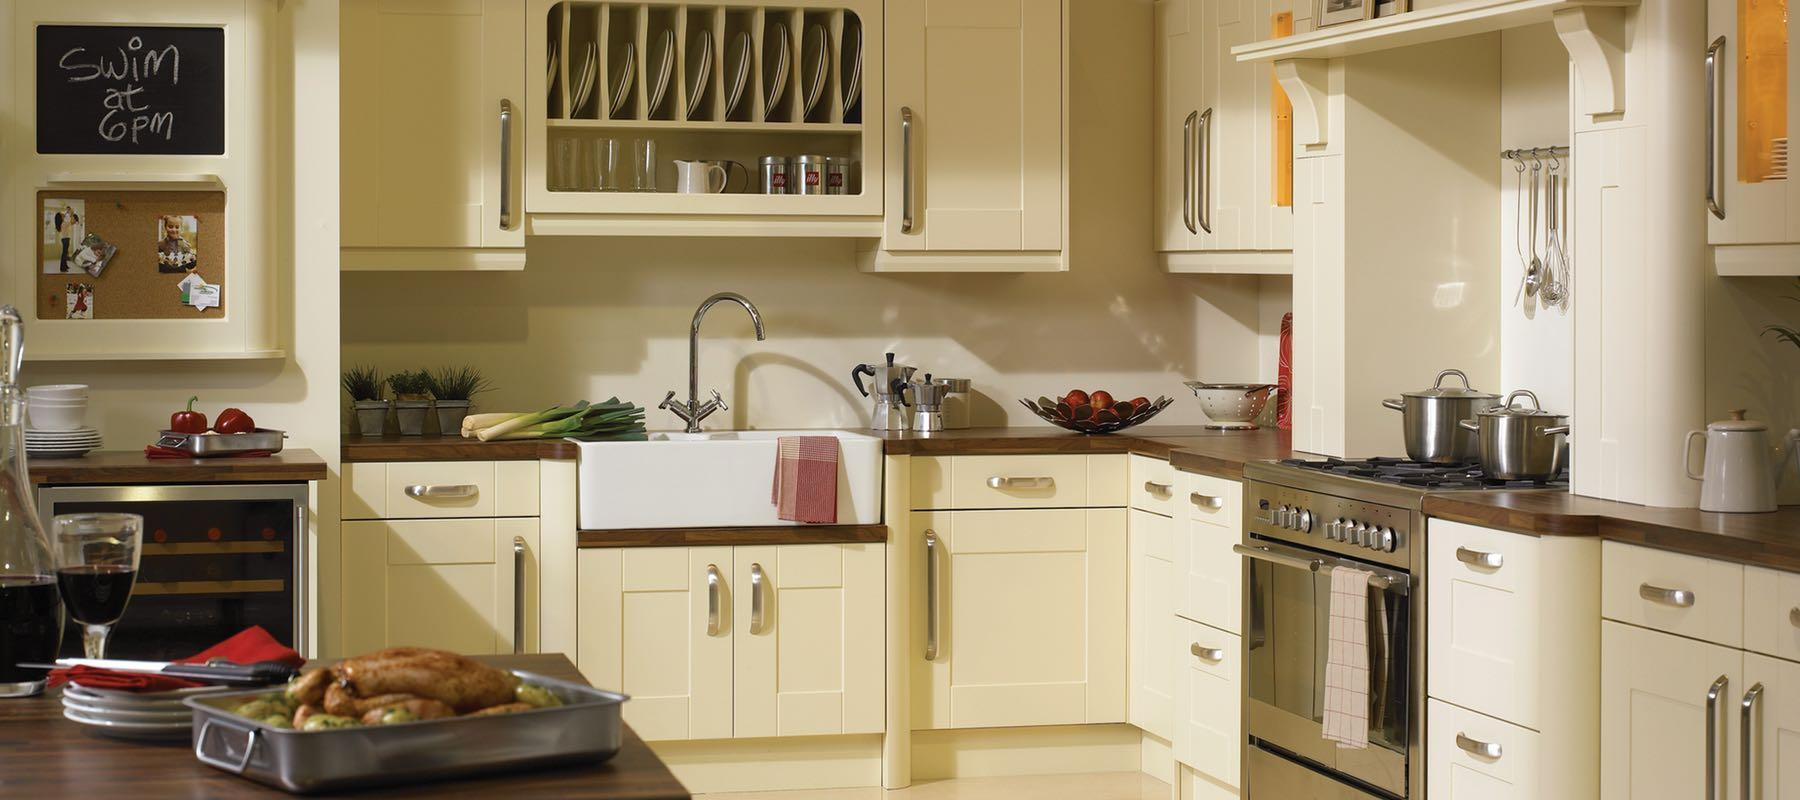 Dream Door Kitchens Warwick Classic Replacement Kitchen Doors Dream Doors